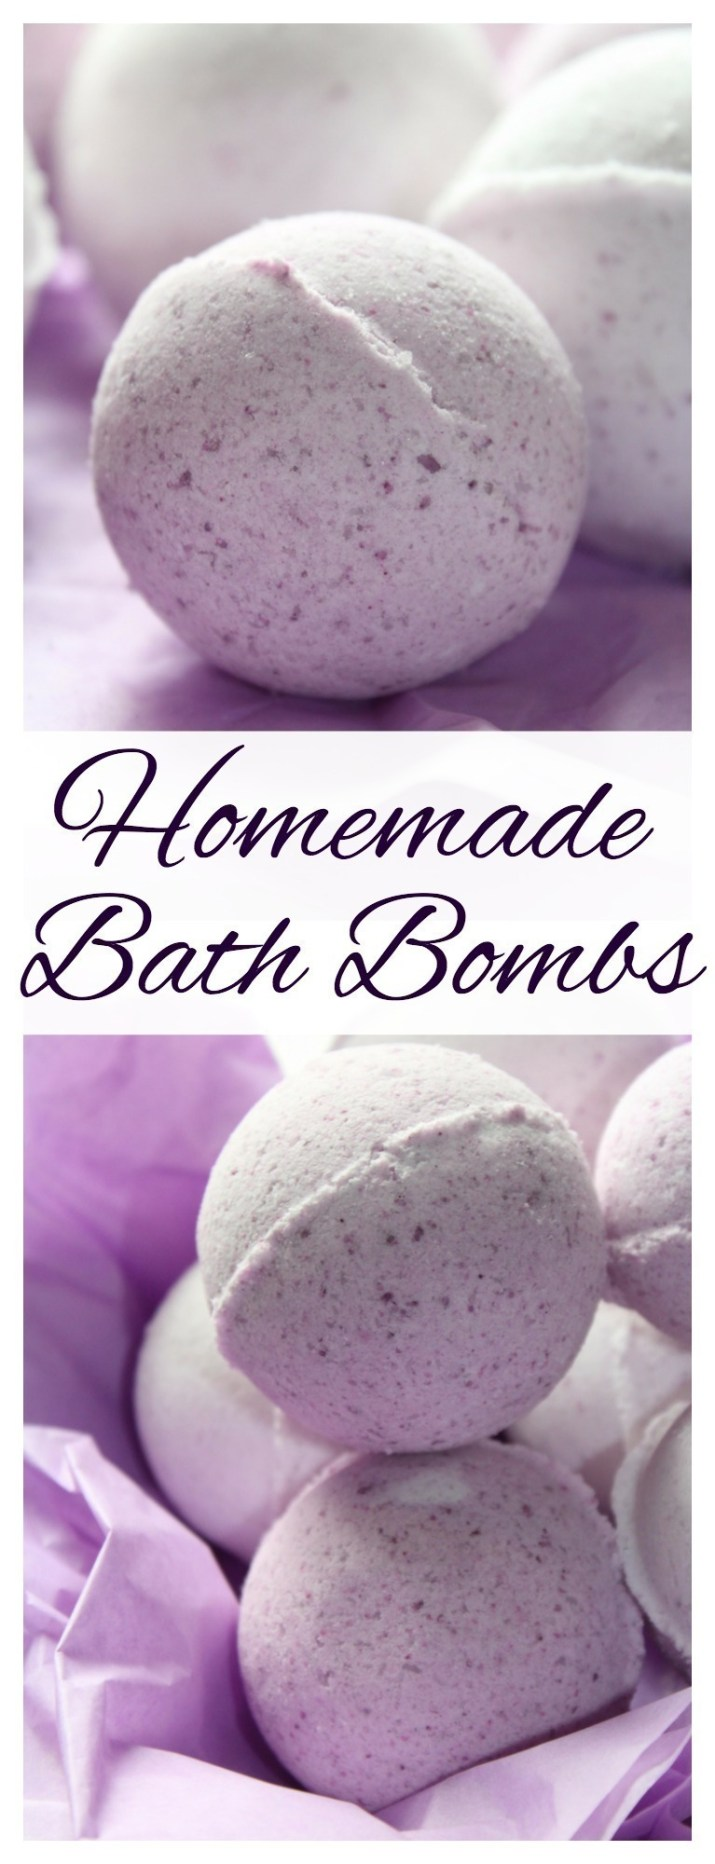 These DIY Bath Bombs are incredibly easy to make - personalize with your own scent and color and give as gifts for Mother's Day, Valentine's Day, birthdays and more.